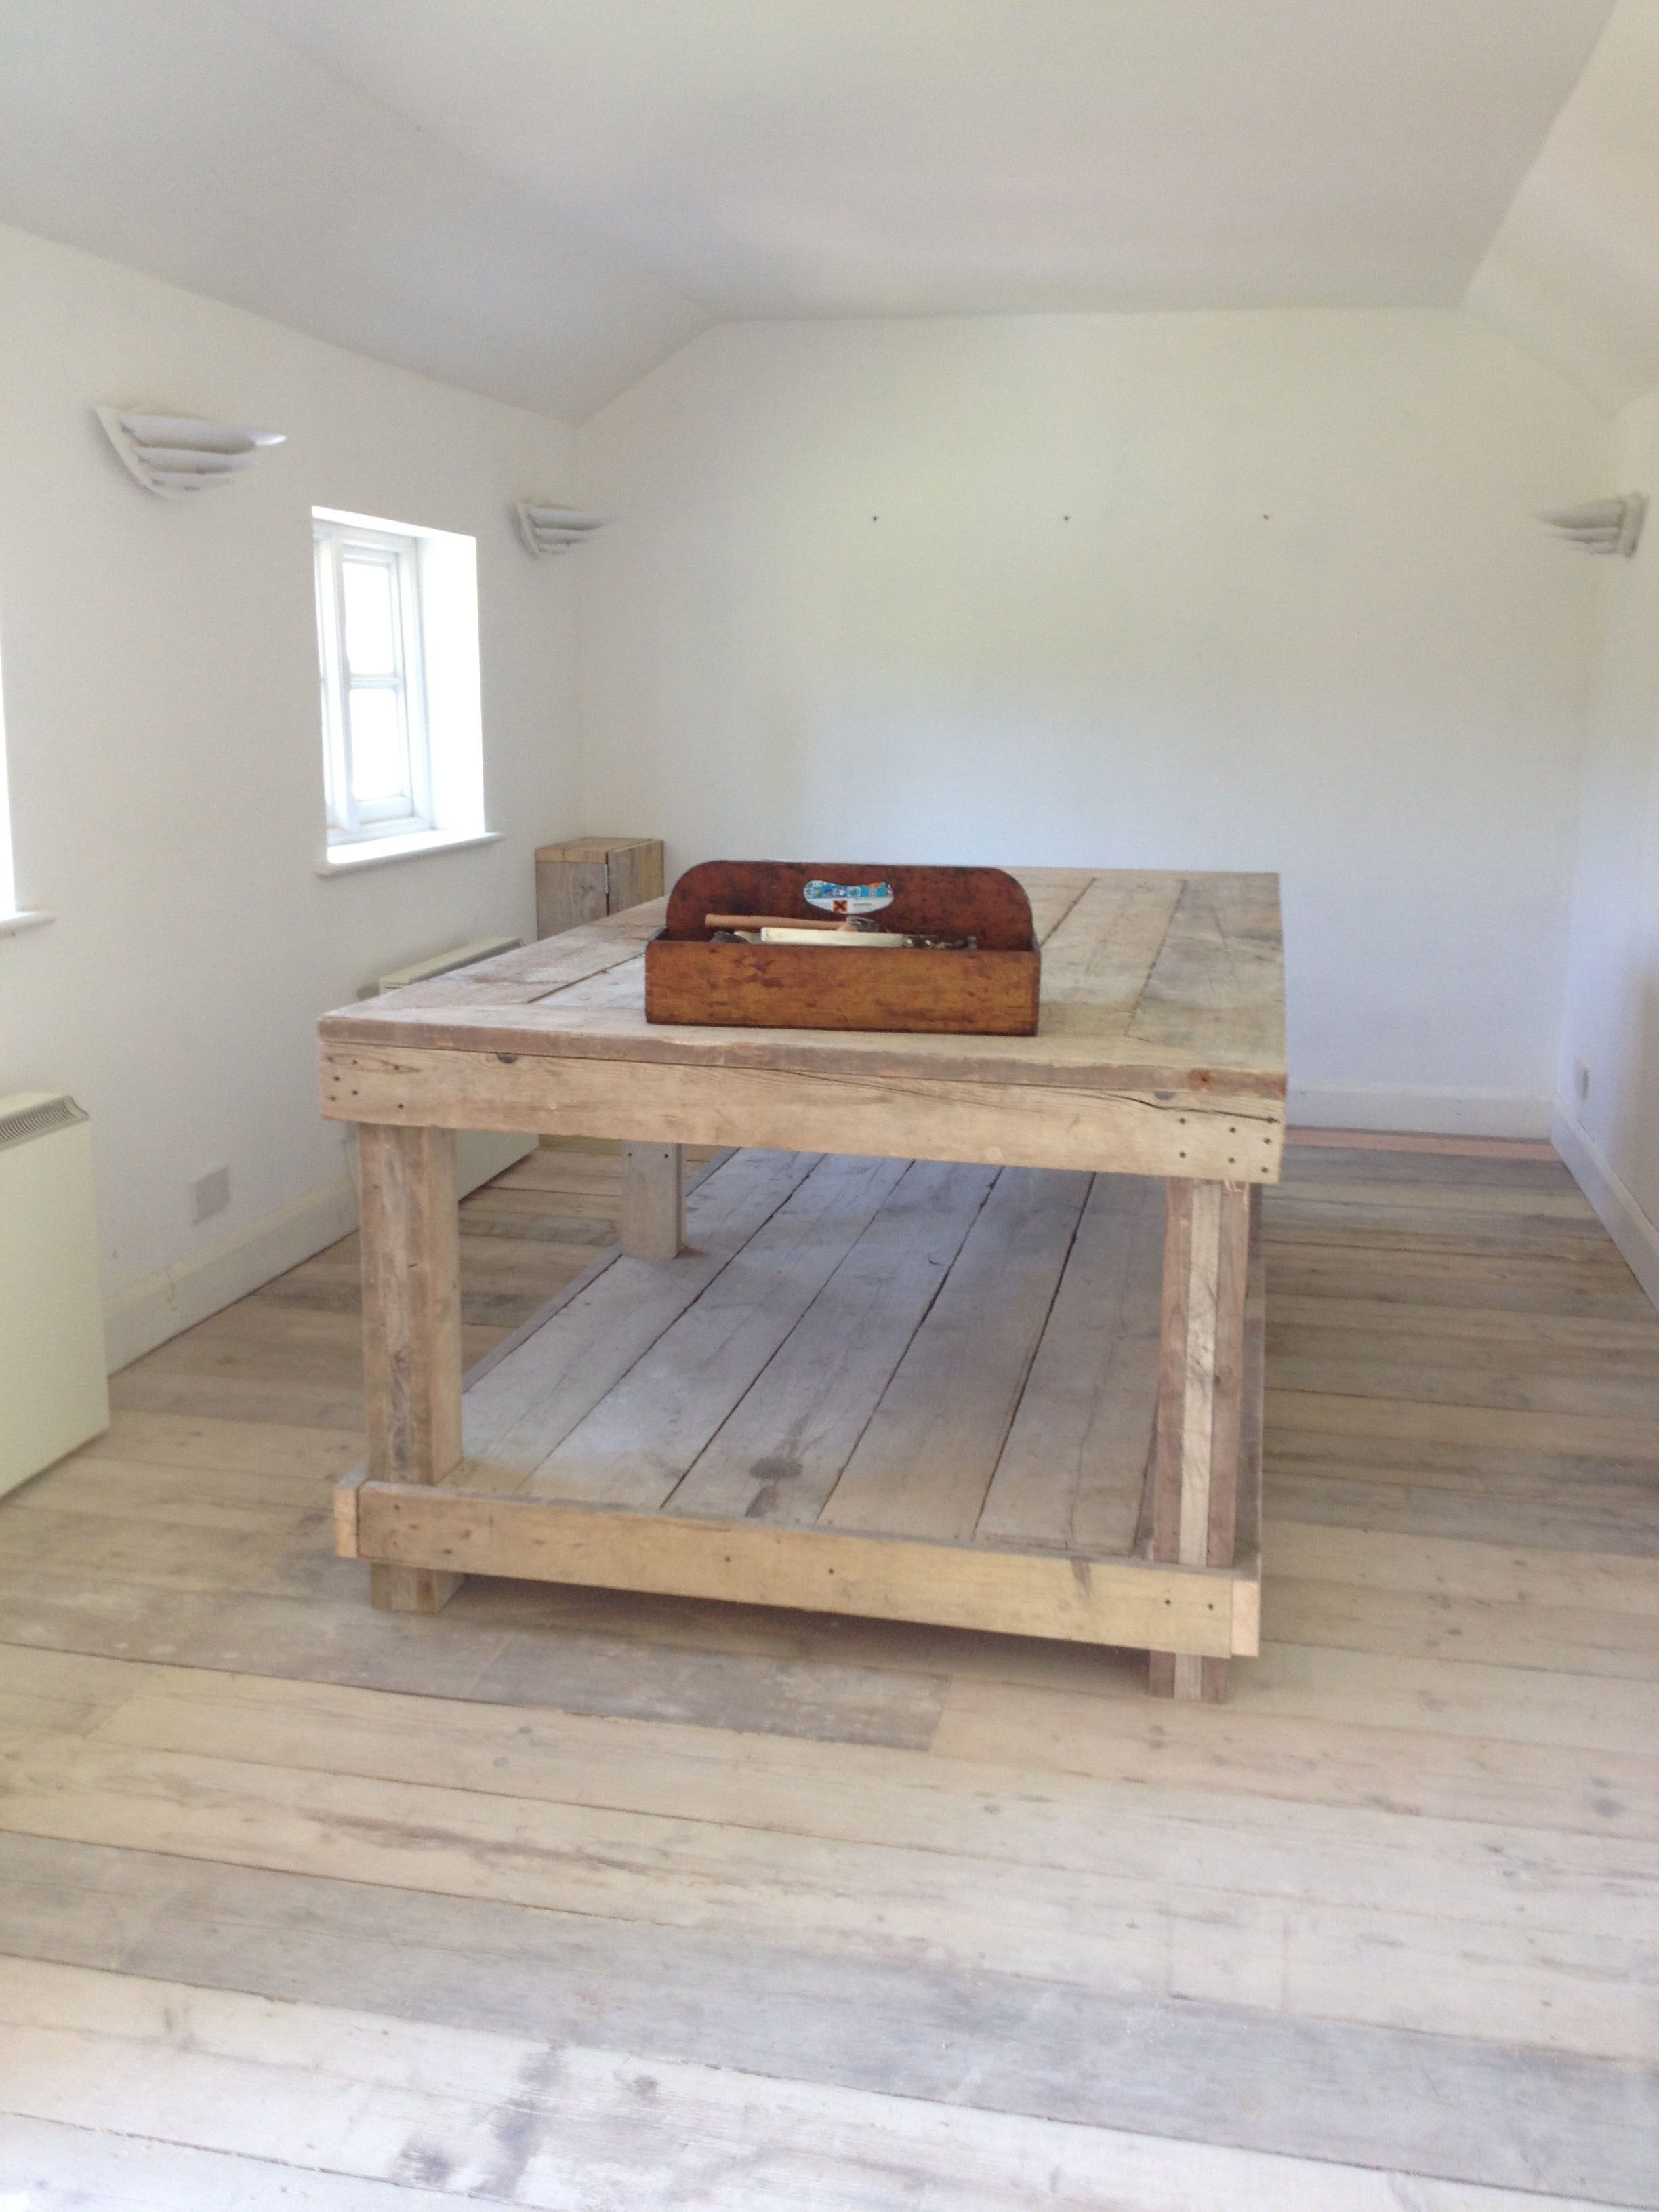 the upholstery studio table and floor are made from reclaimed scaffold